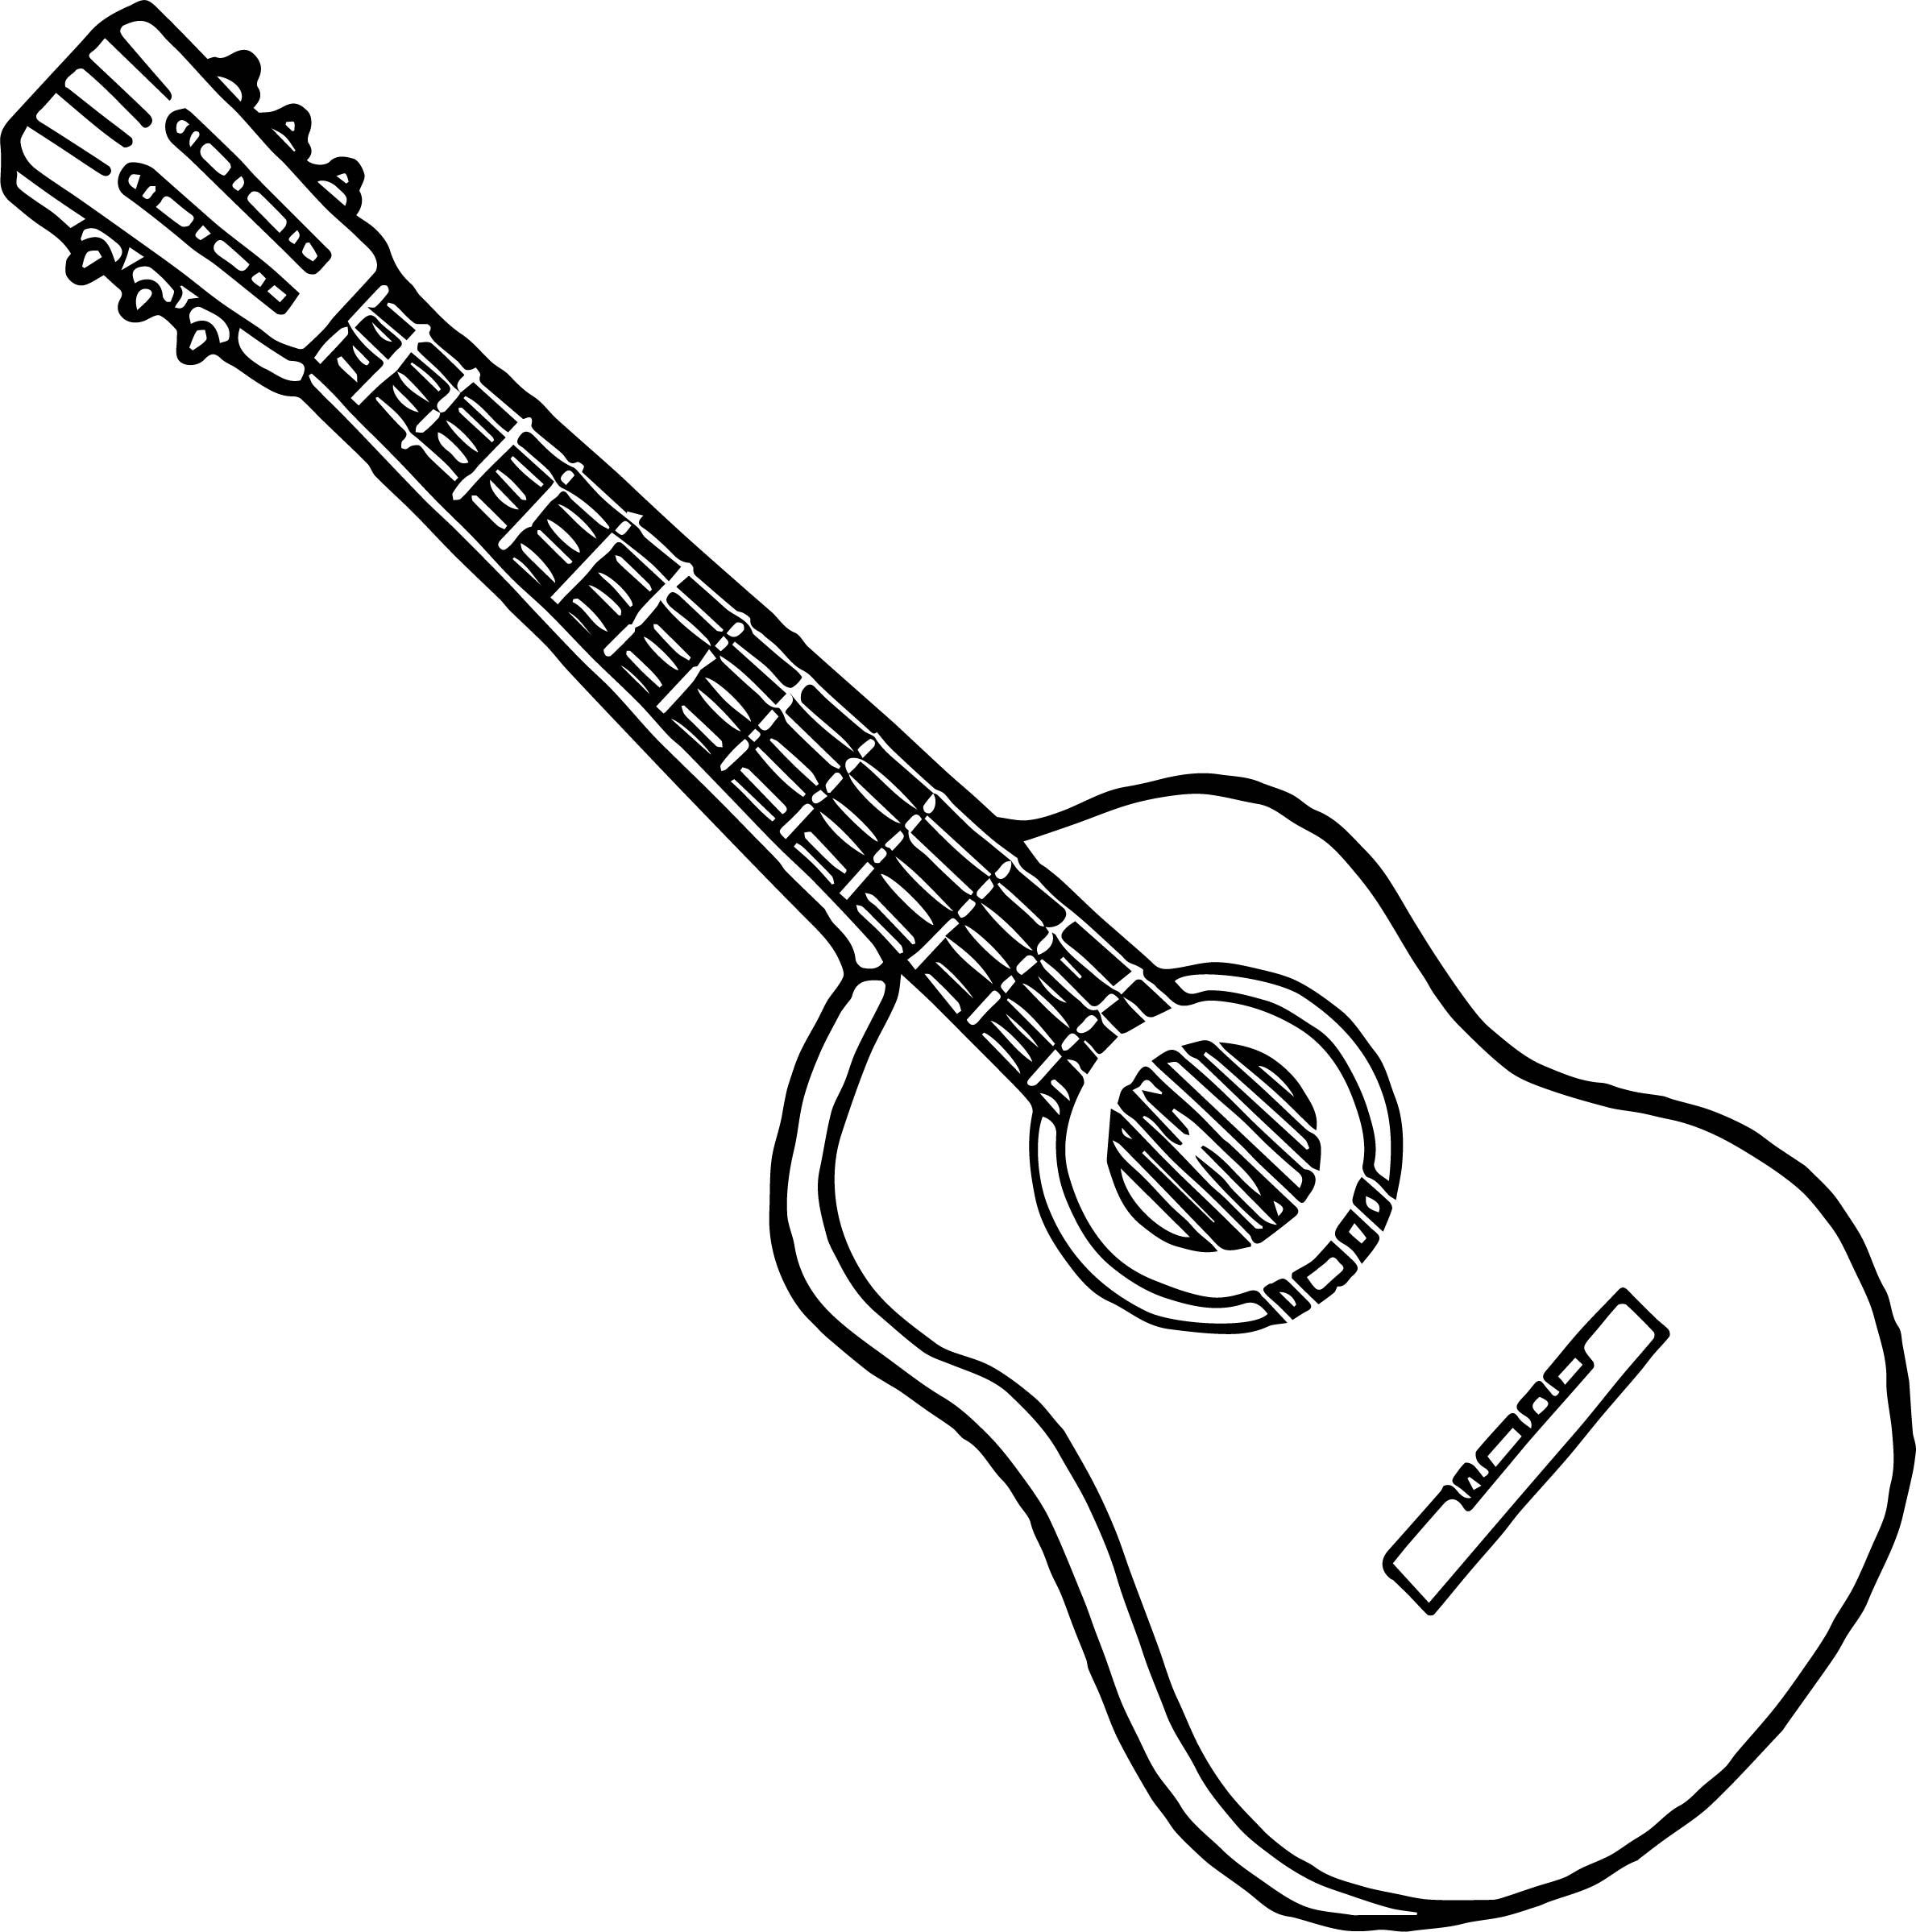 Electric guitar line drawing at getdrawings free for personal